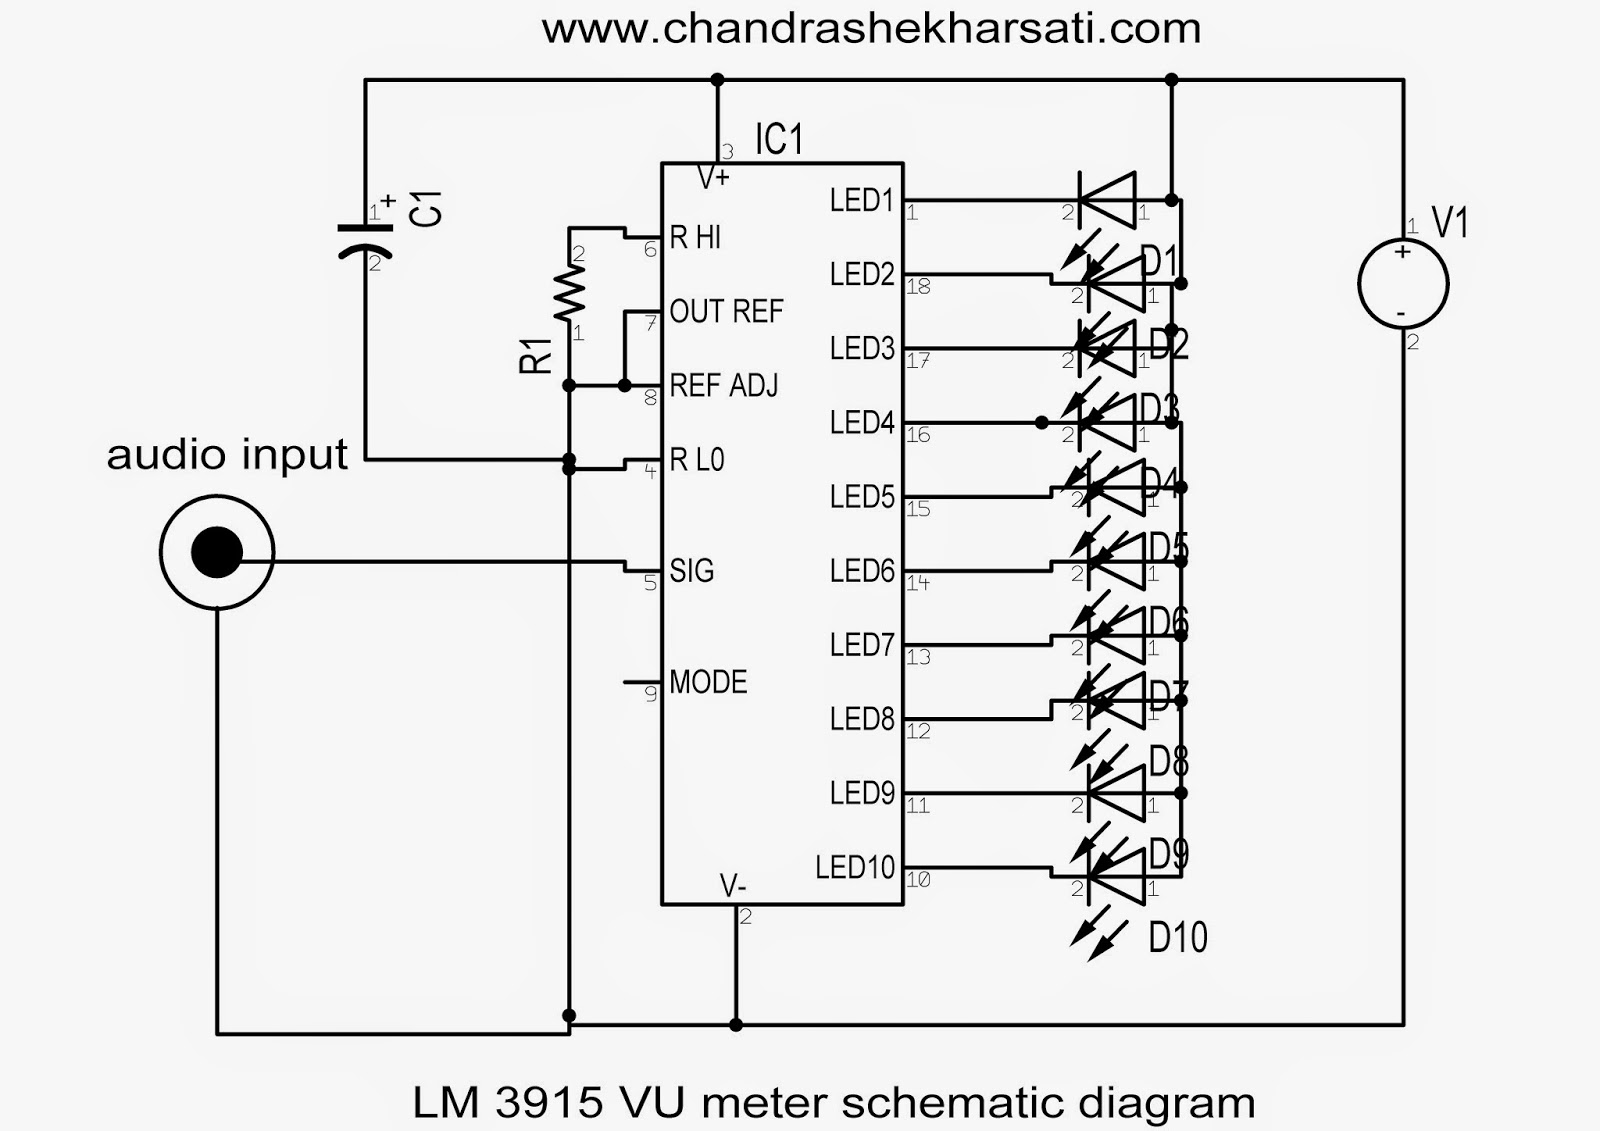 Lm3915 Vu Meter With Led Strips Part1 Chandra Shekhar Sati Circuit Bar Ic Lm3914 Picture Of Good Electronic Leds Audio Input Is Connected Across Pin No 5 And Gnd 248 Are Shorted To We Provide A Ve Supply Between 12v At 3